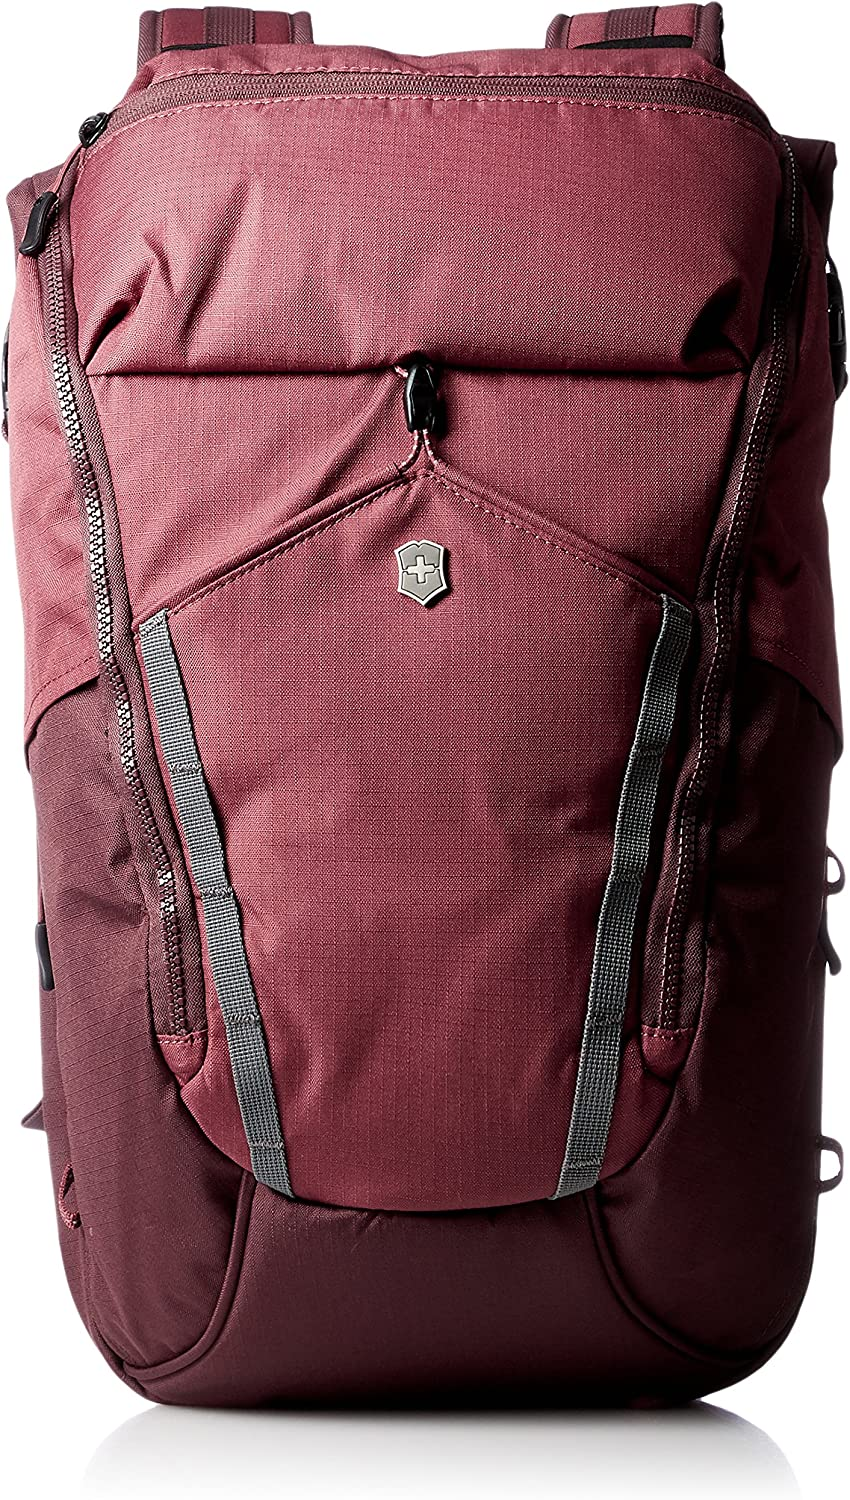 Victorinox Altmont Active Deluxe Rolltop Laptop Backpack, Burgundy, 18.9-inch